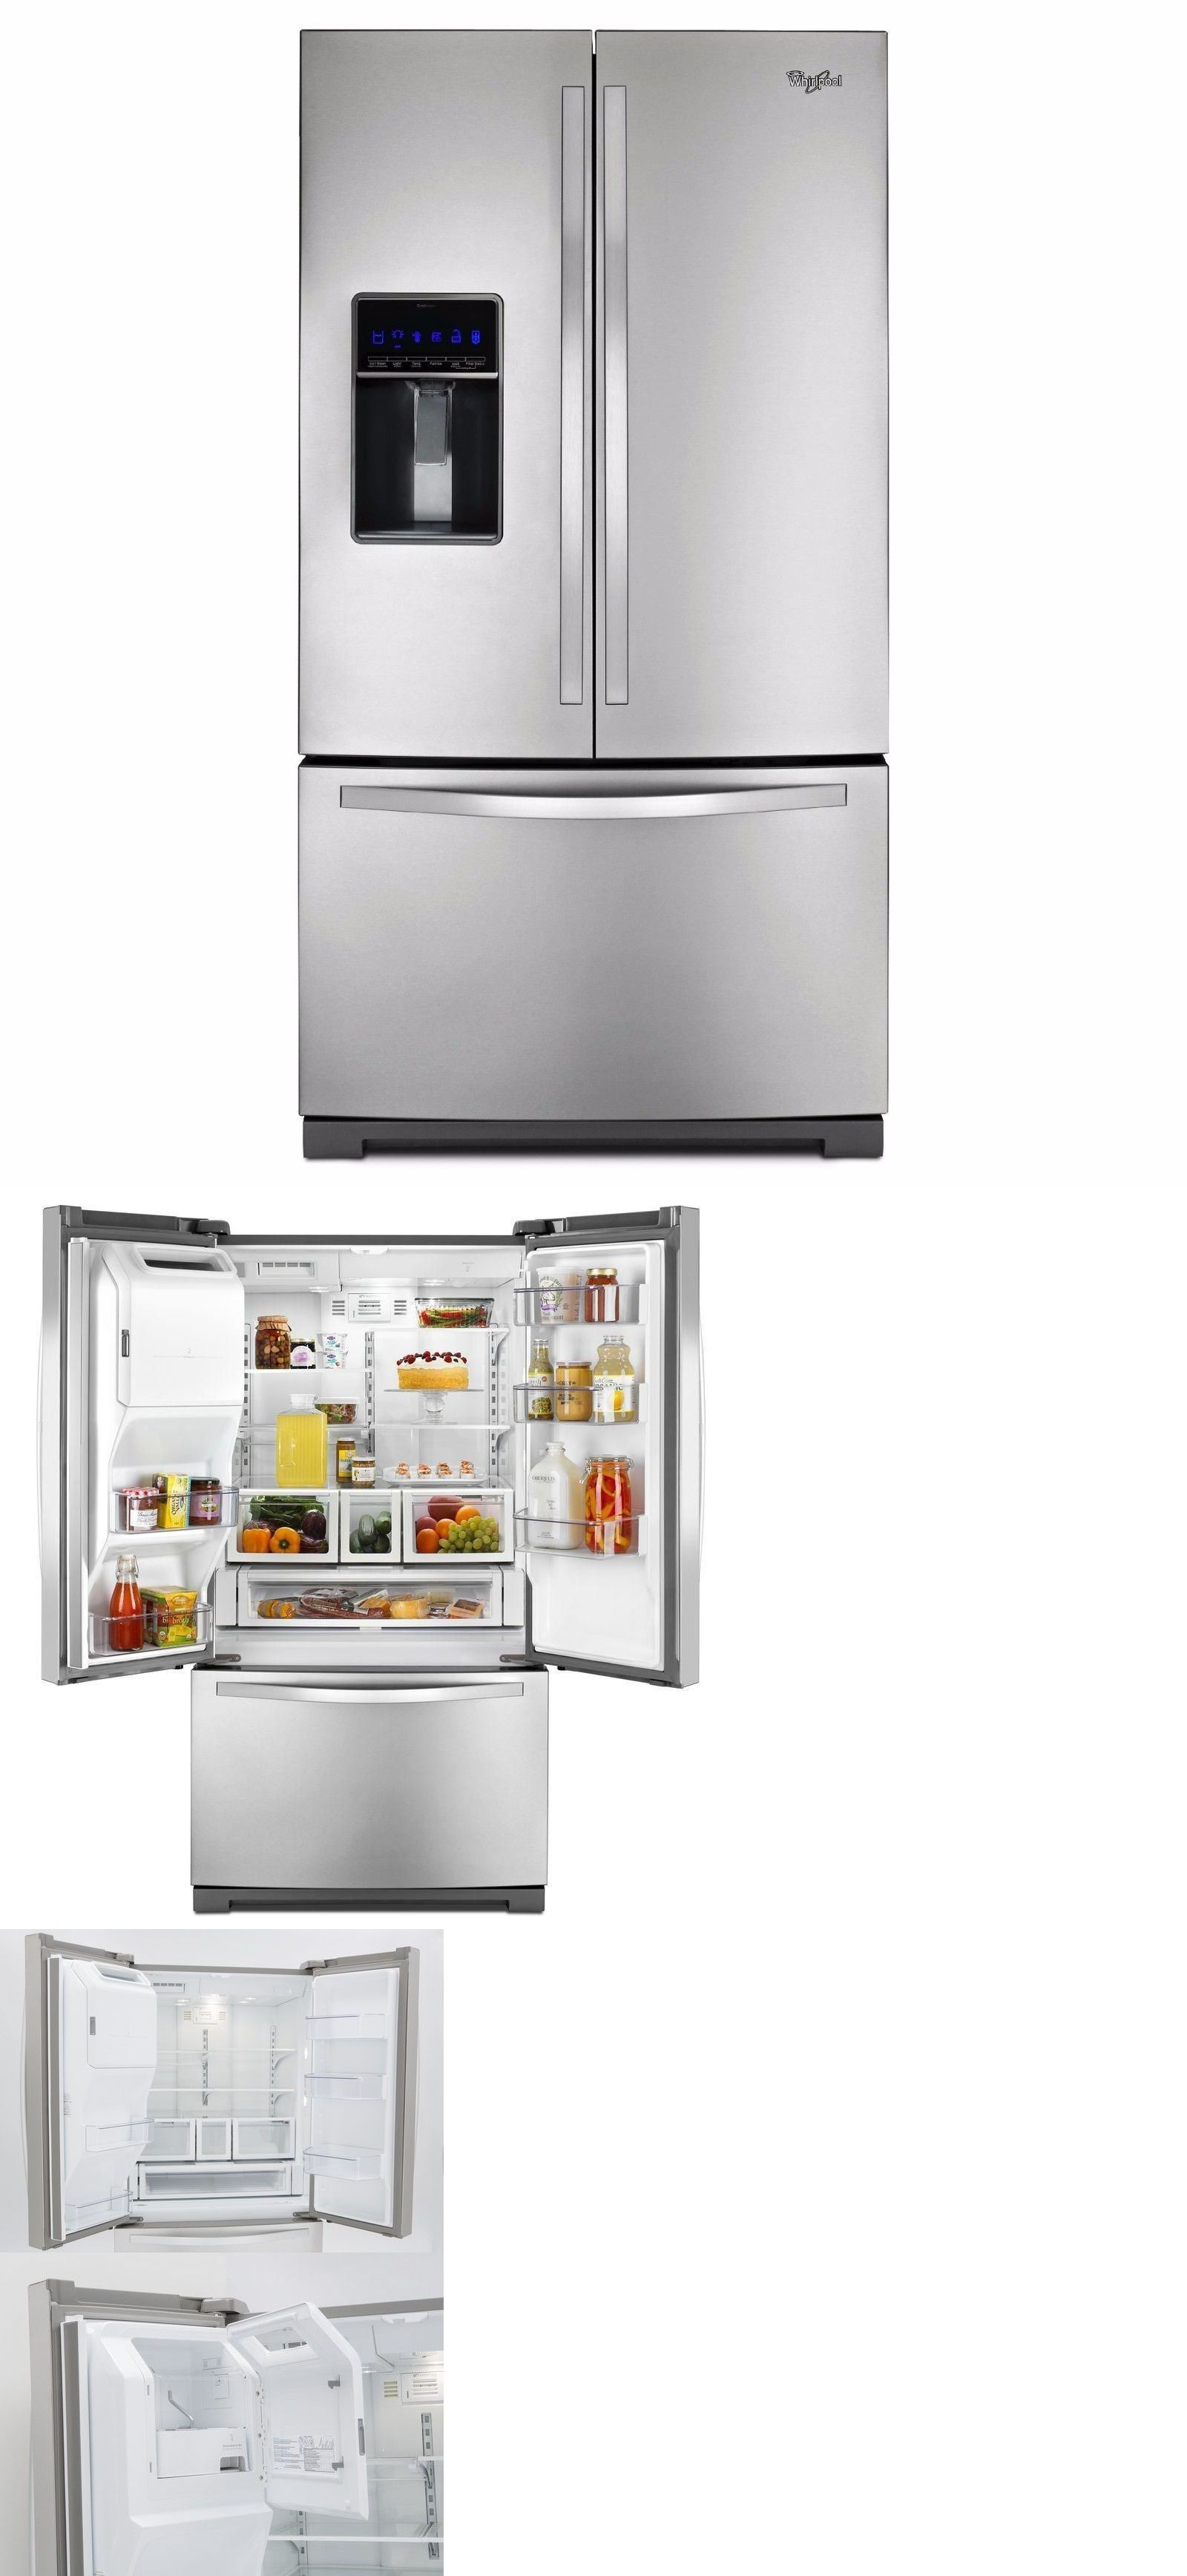 36 Refrigerators Refrigerators 20713 Whirlpool Wrf736sdam 36 French Door